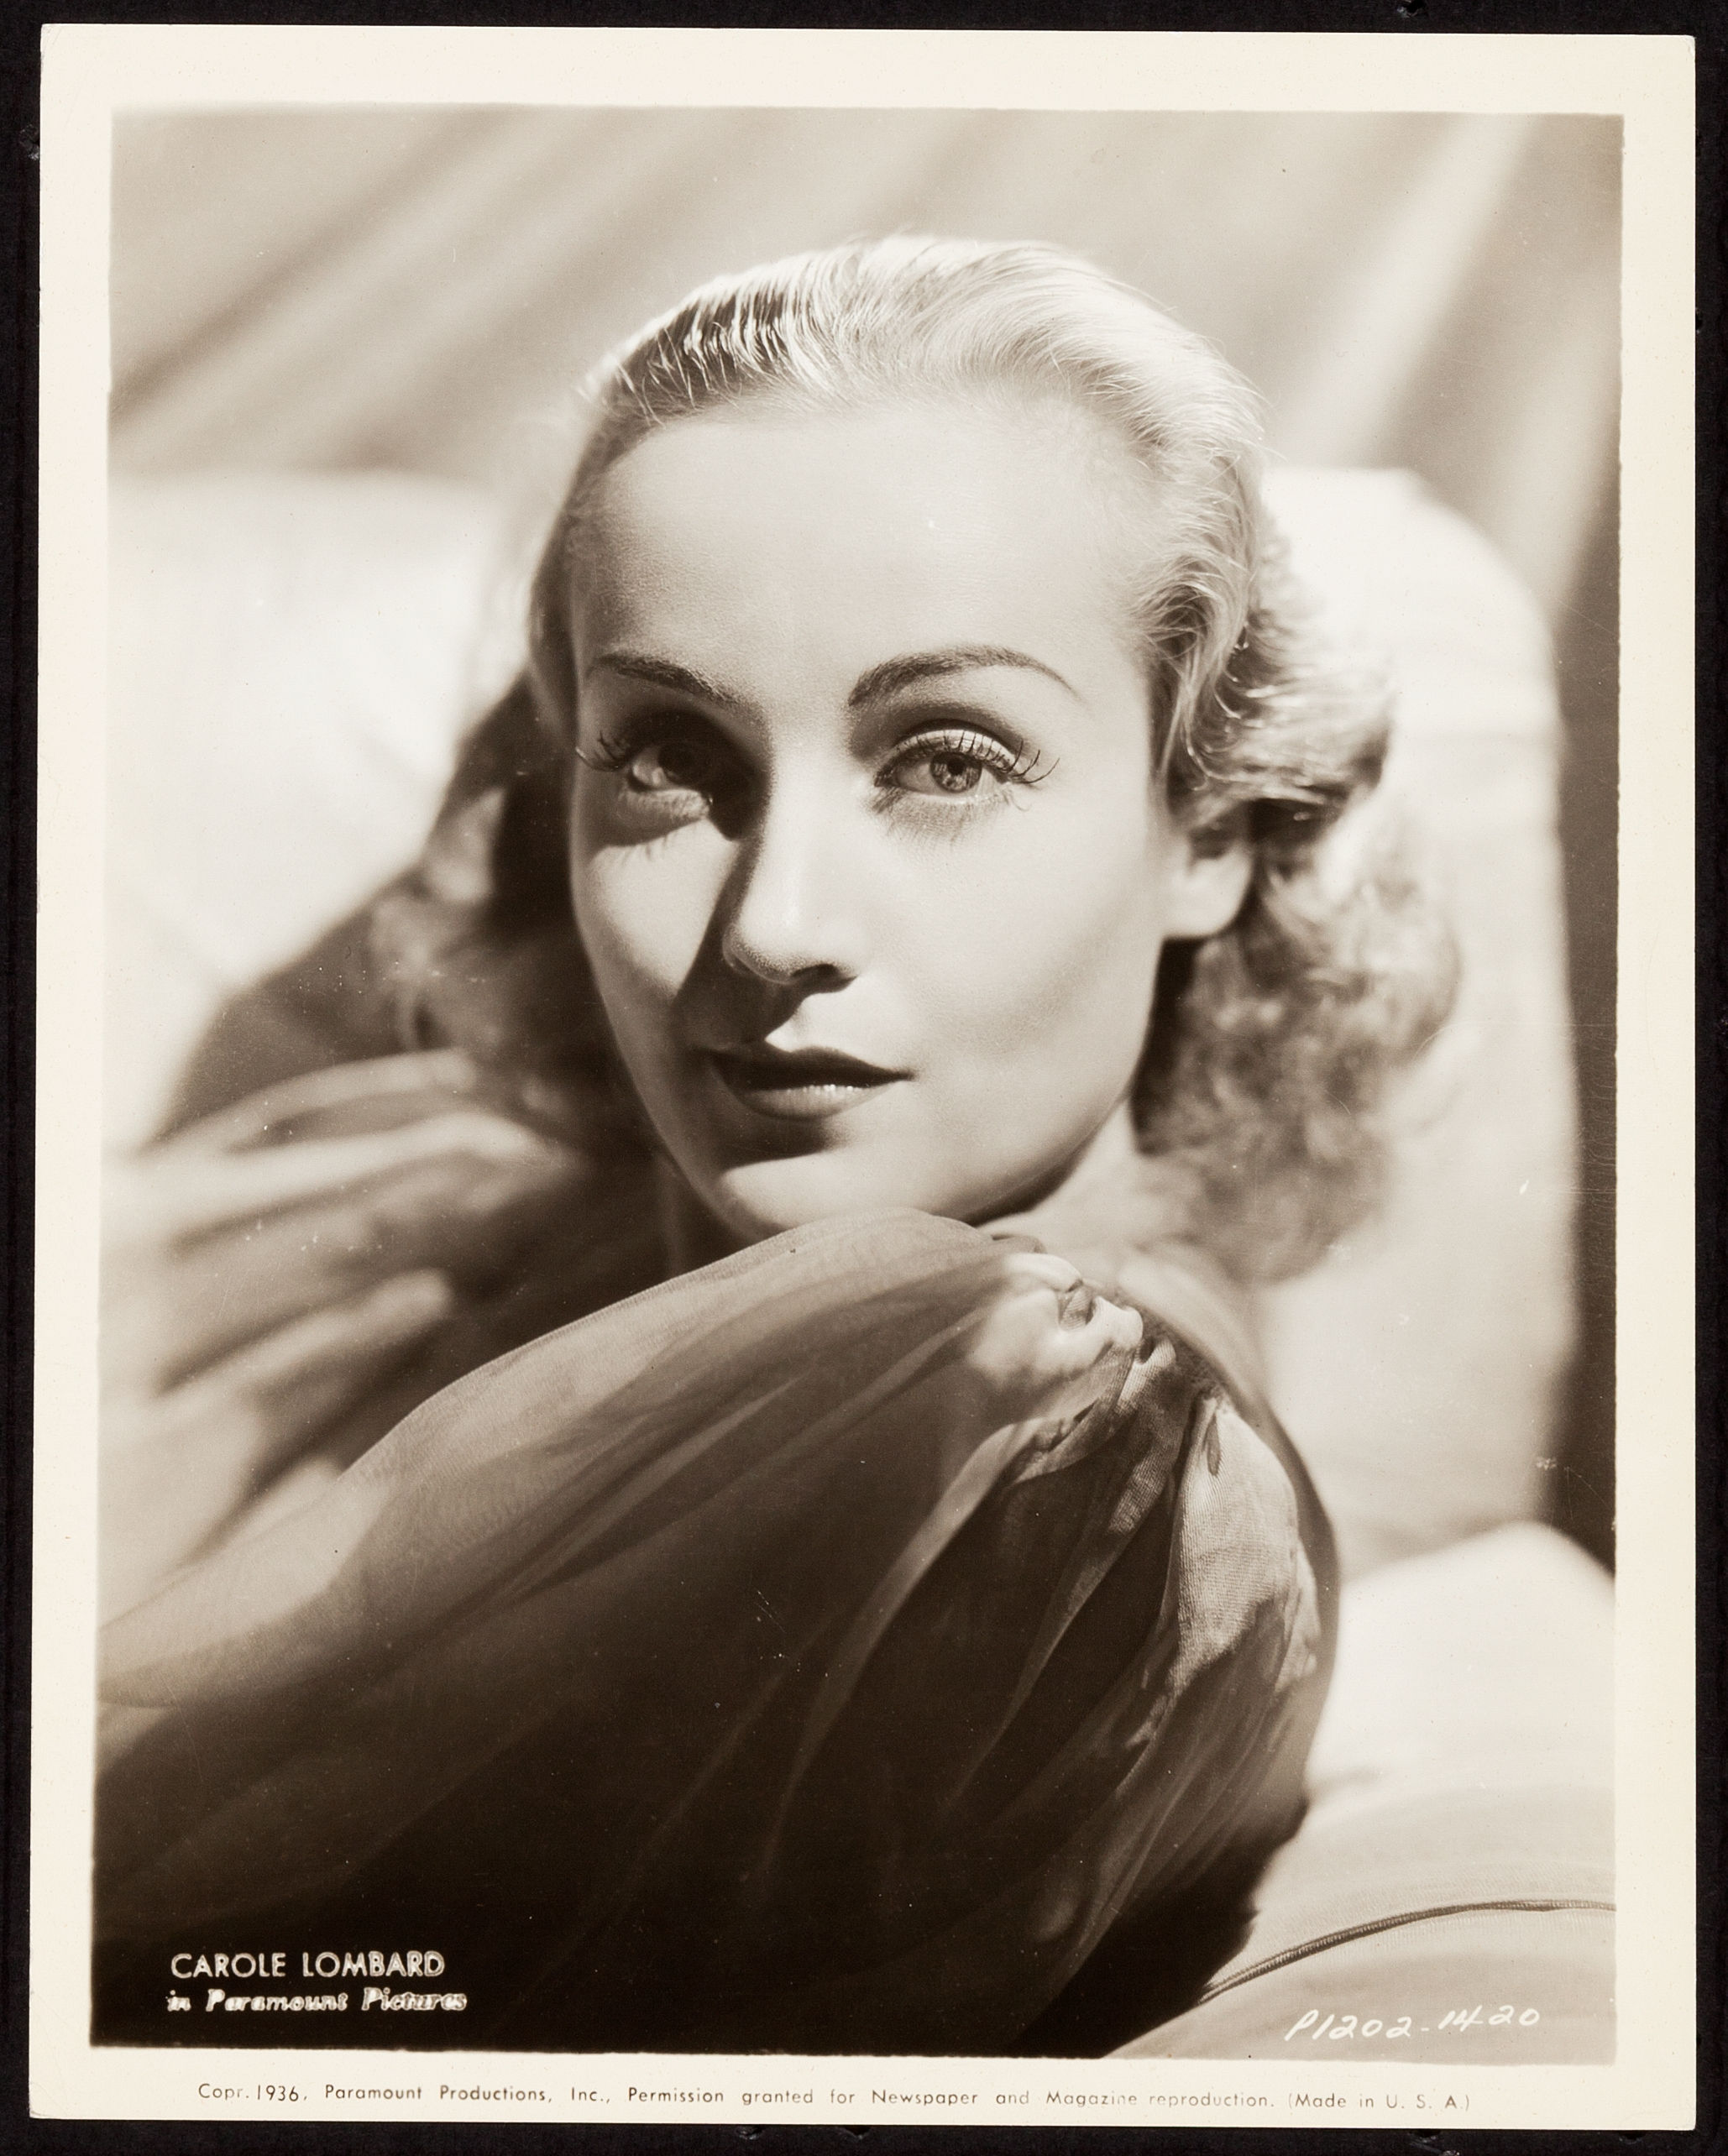 carole lombard p1202-1420 front